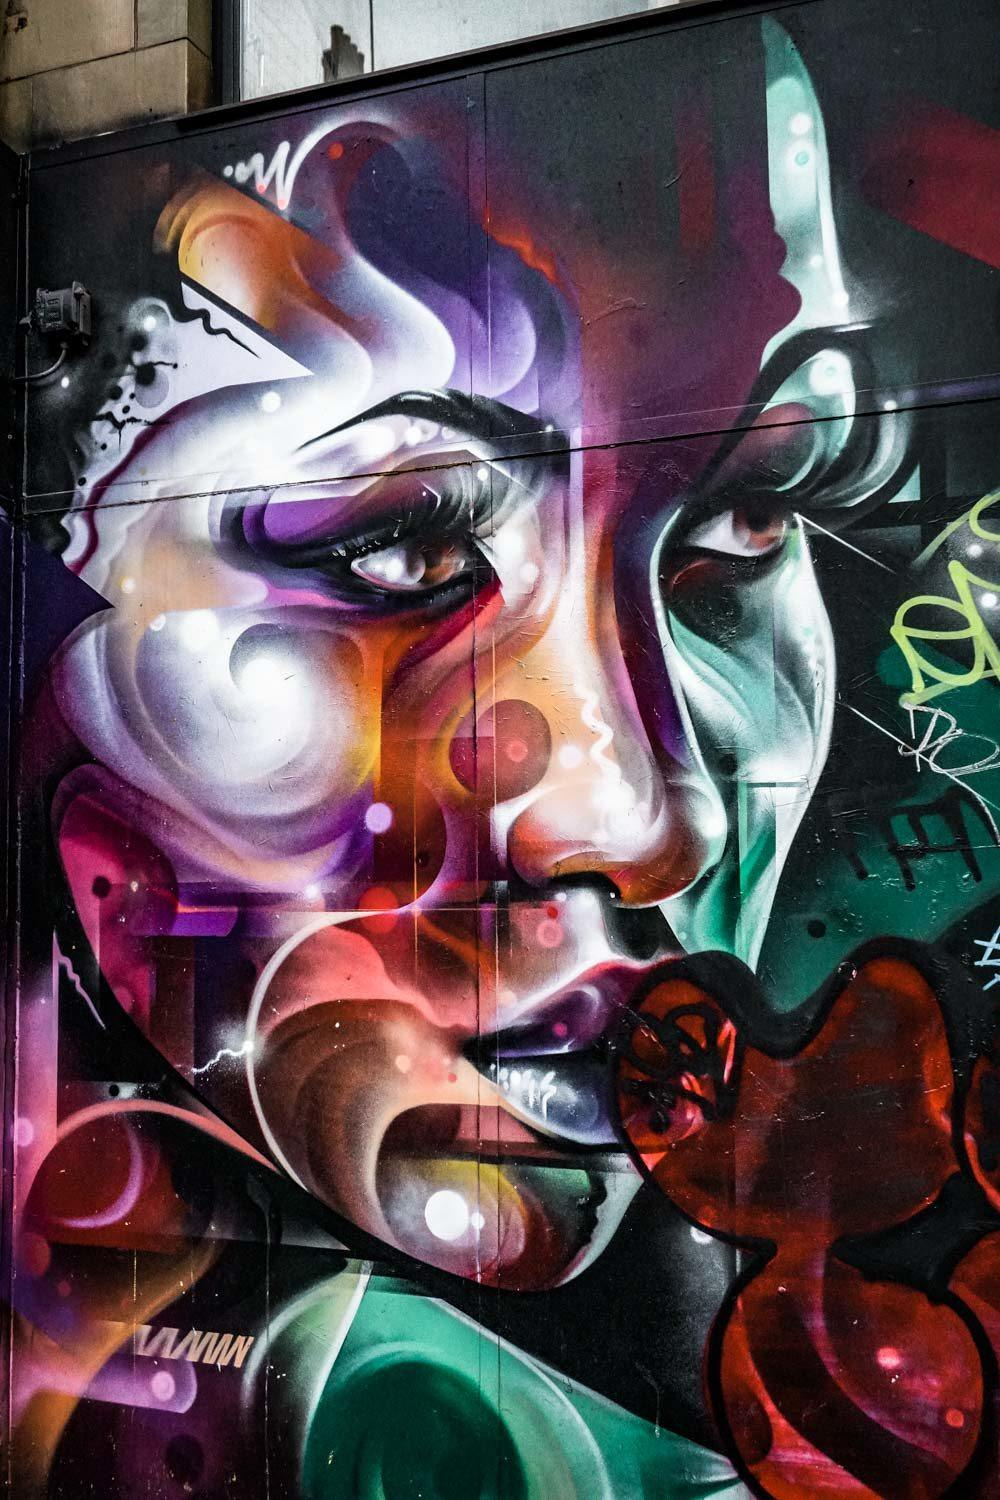 Mr Cenz on Great Eastern Street, Shoreditch